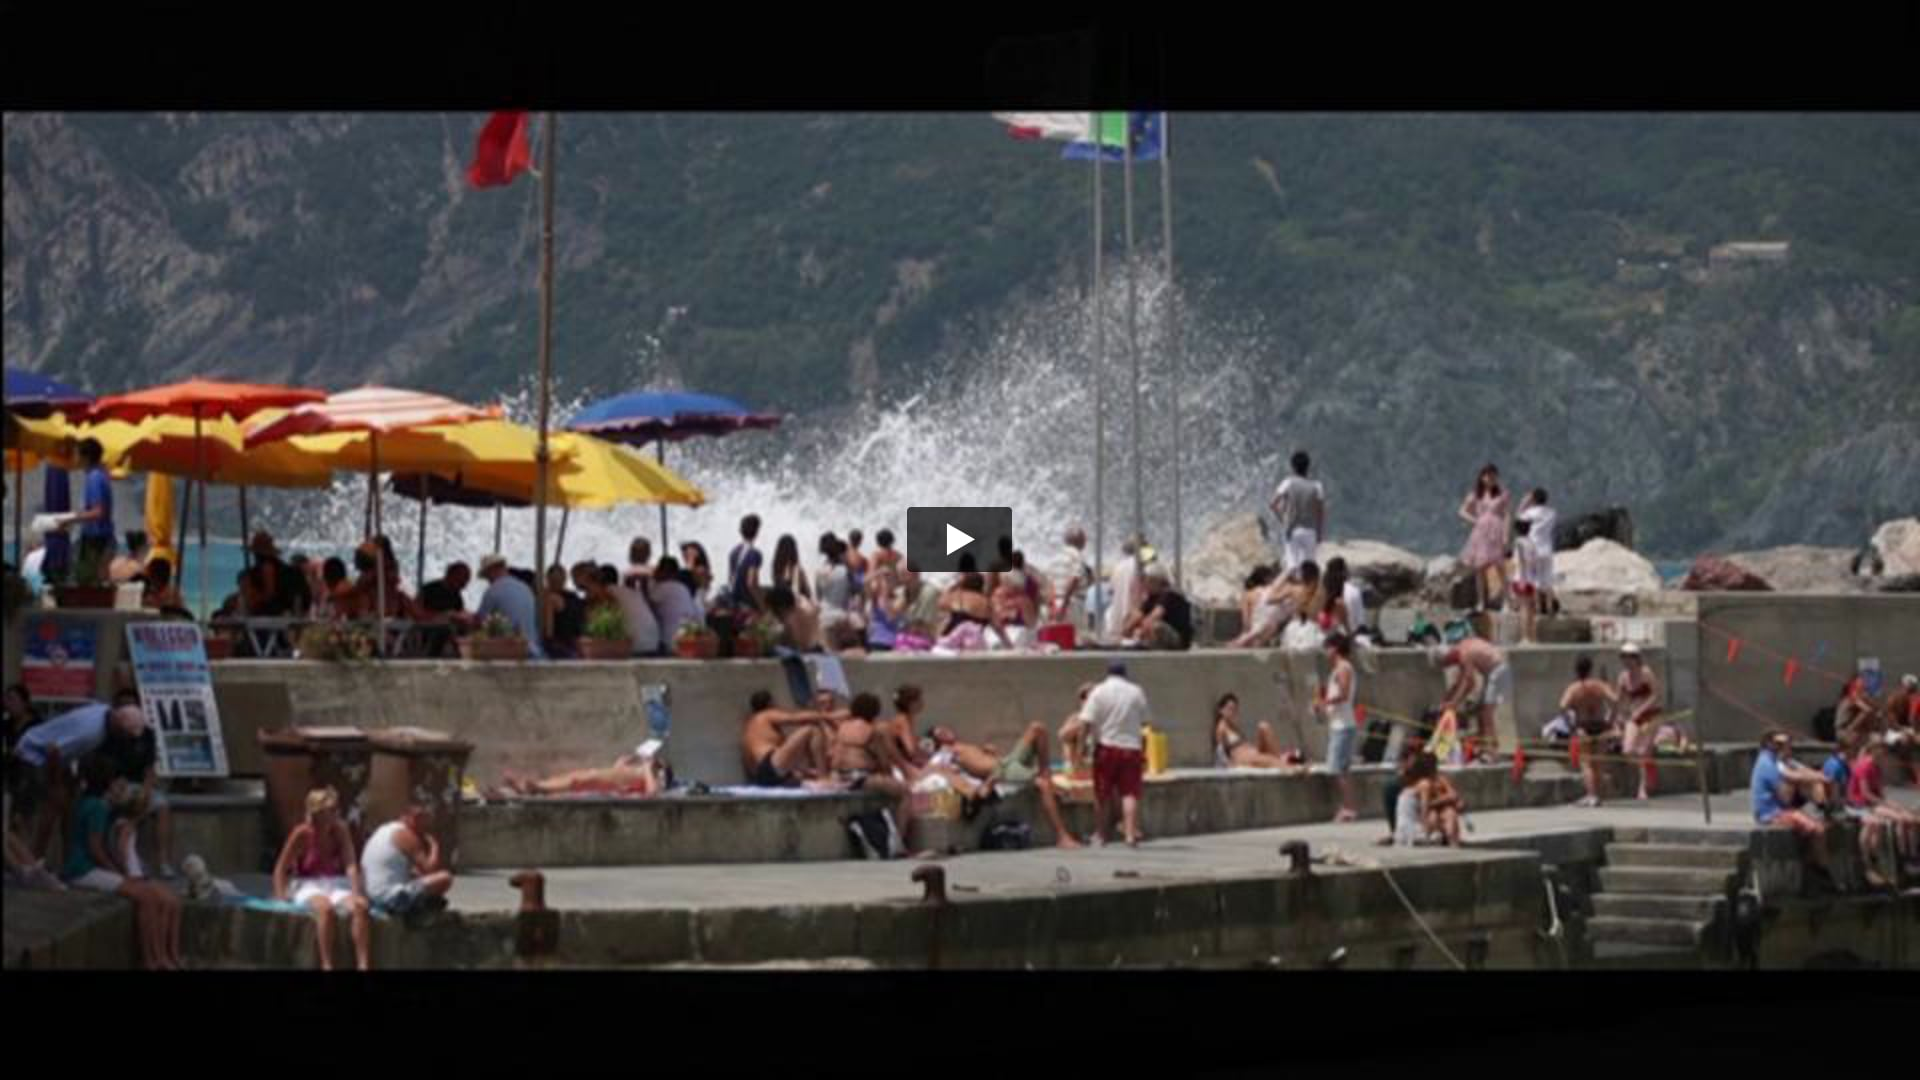 2012 Aquabumps Spring/Summer Moments in Italy - in association with Peroni